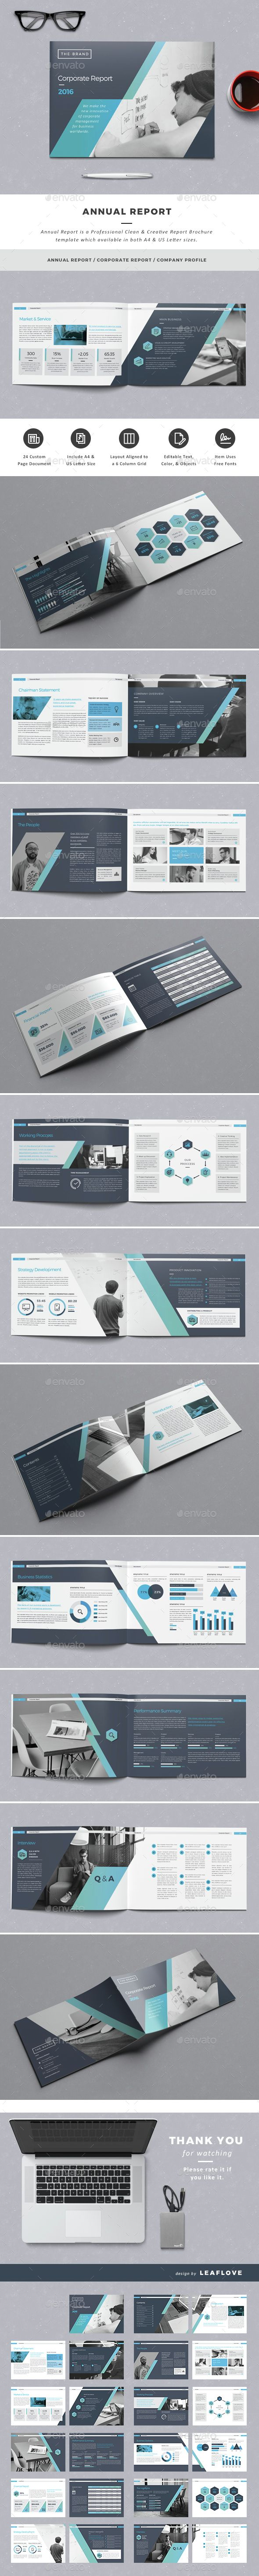 Annual Report - Corporate Brochures                                                                                                                                                                                 More